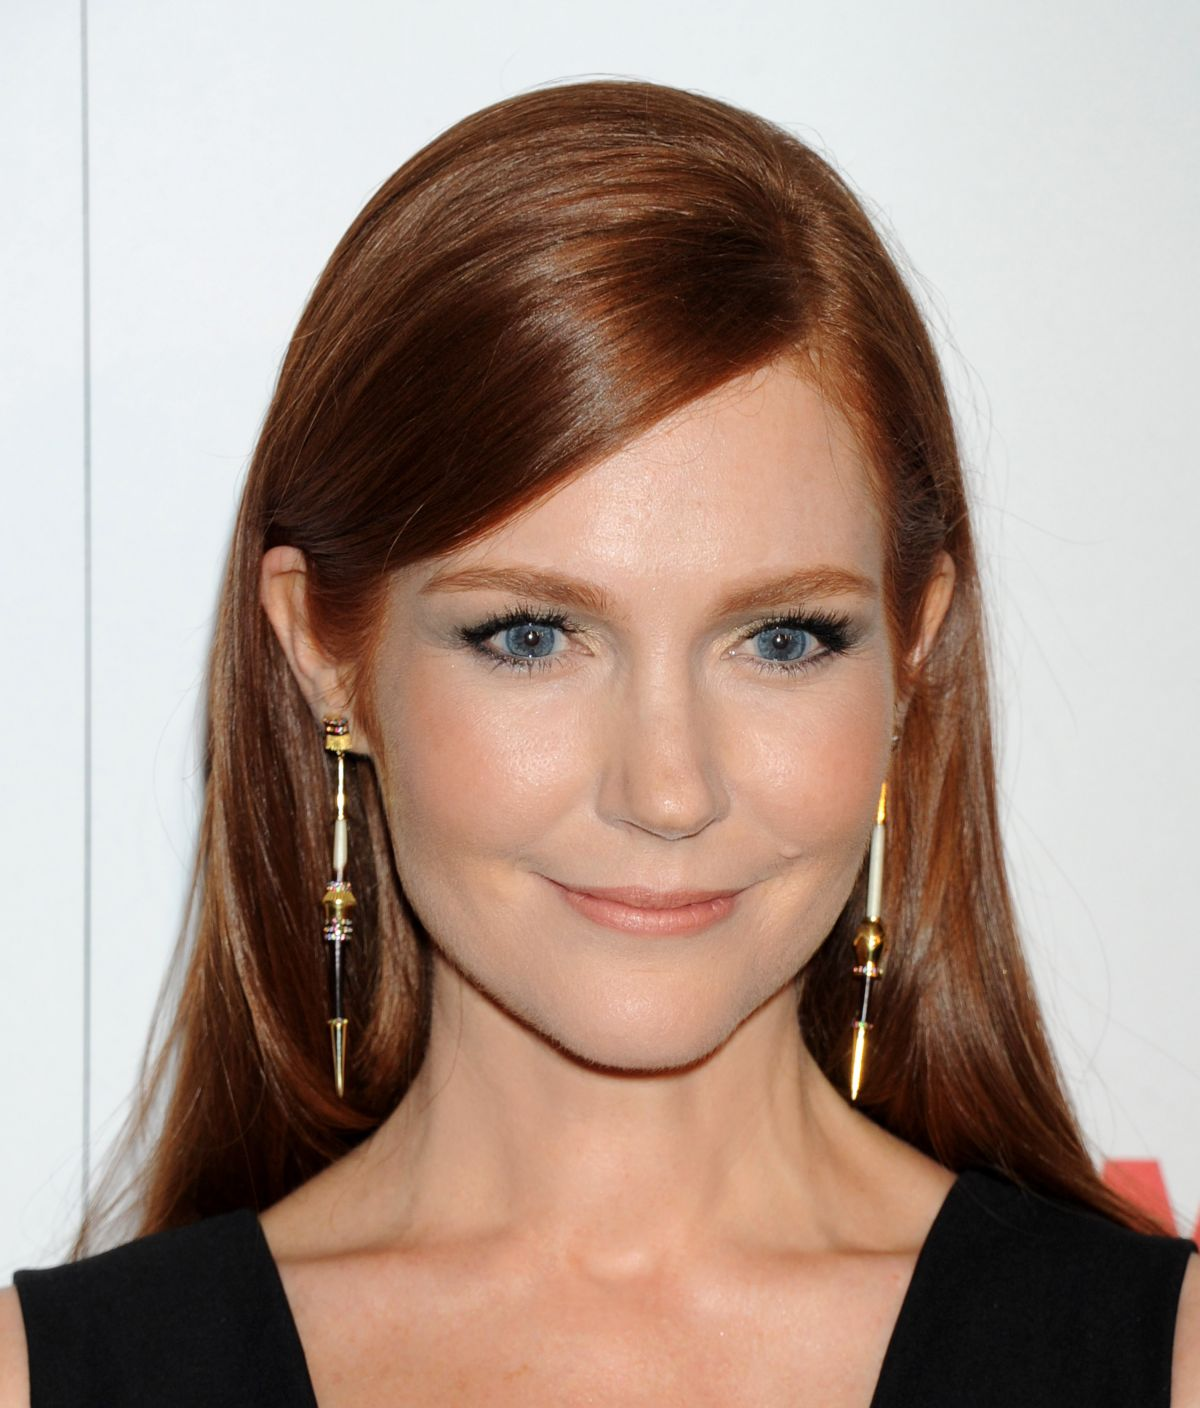 darby stanchfield boyfrienddarby stanchfield instagram, darby stanchfield feet pics, darby stanchfield, darby stanchfield husband, darby stanchfield married, darby stanchfield twitter, darby stanchfield ncis, darby stanchfield how i met your mother, darby stanchfield hair commercial, darby stanchfield family, darby stanchfield hot, darby stanchfield boyfriend, darby stanchfield net worth, darby stanchfield plastic surgery, darby stanchfield measurements, darby stanchfield herbal essence, darby stanchfield imdb, darby stanchfield dating